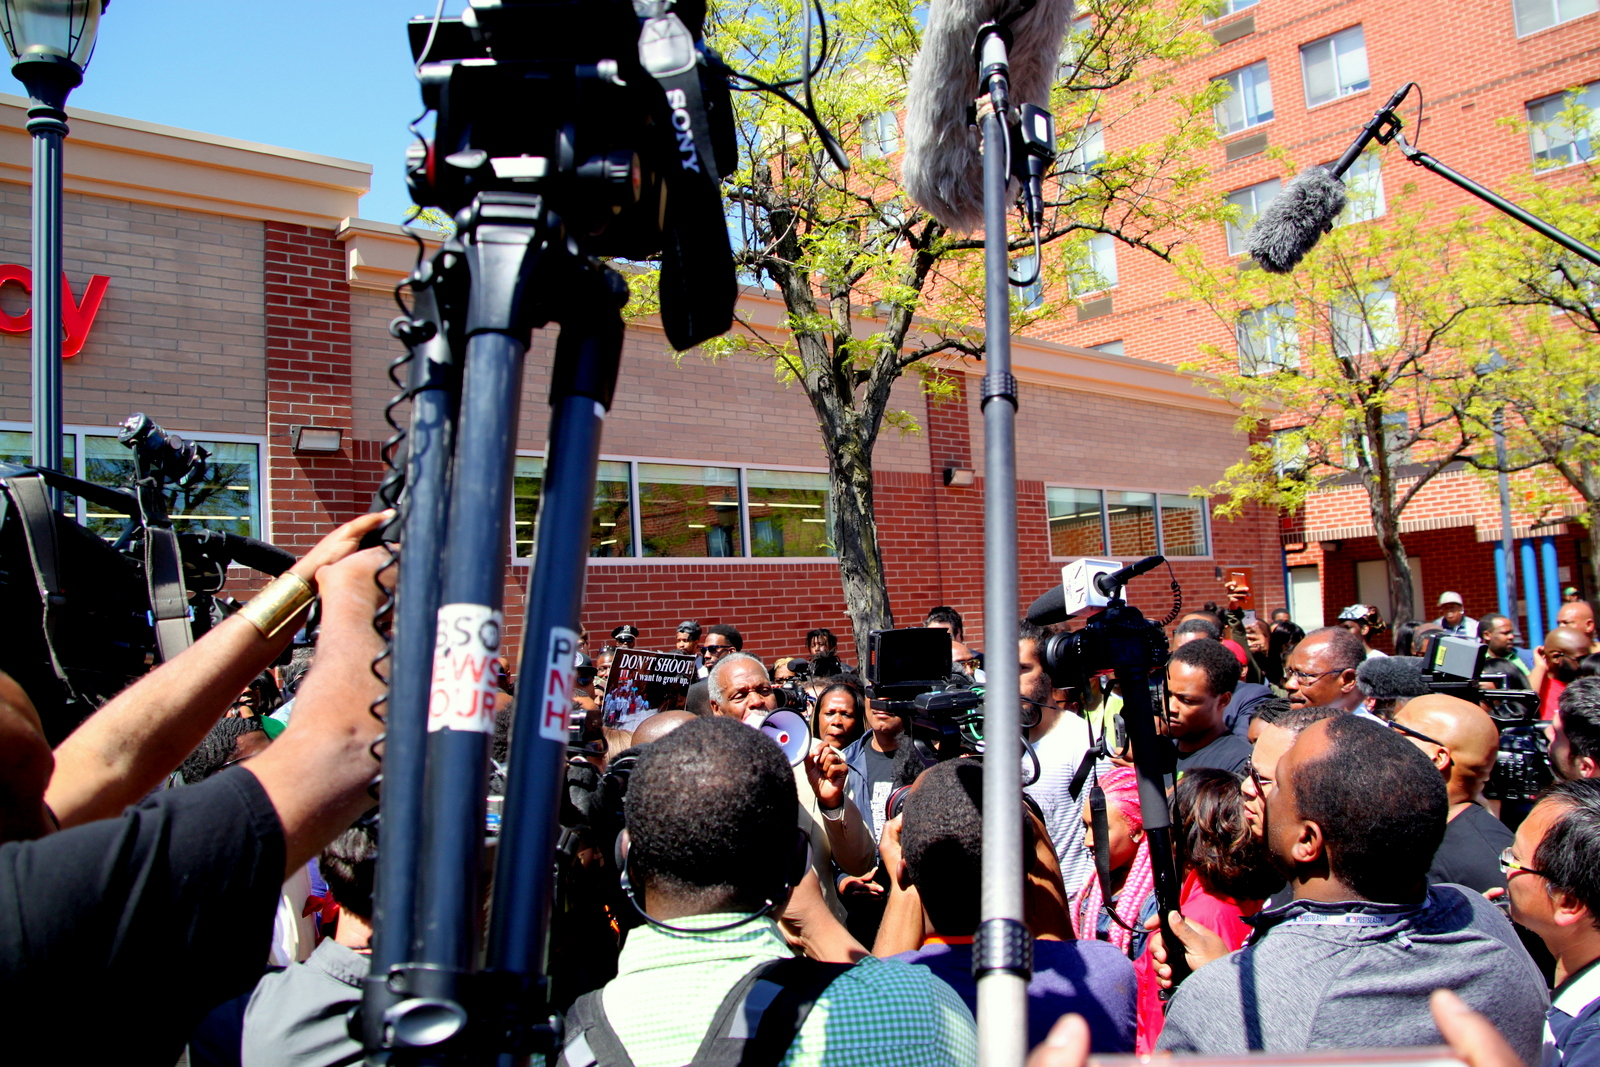 Actor Danny Glover addresses the crowd at Penn-North. (Louie Krauss)